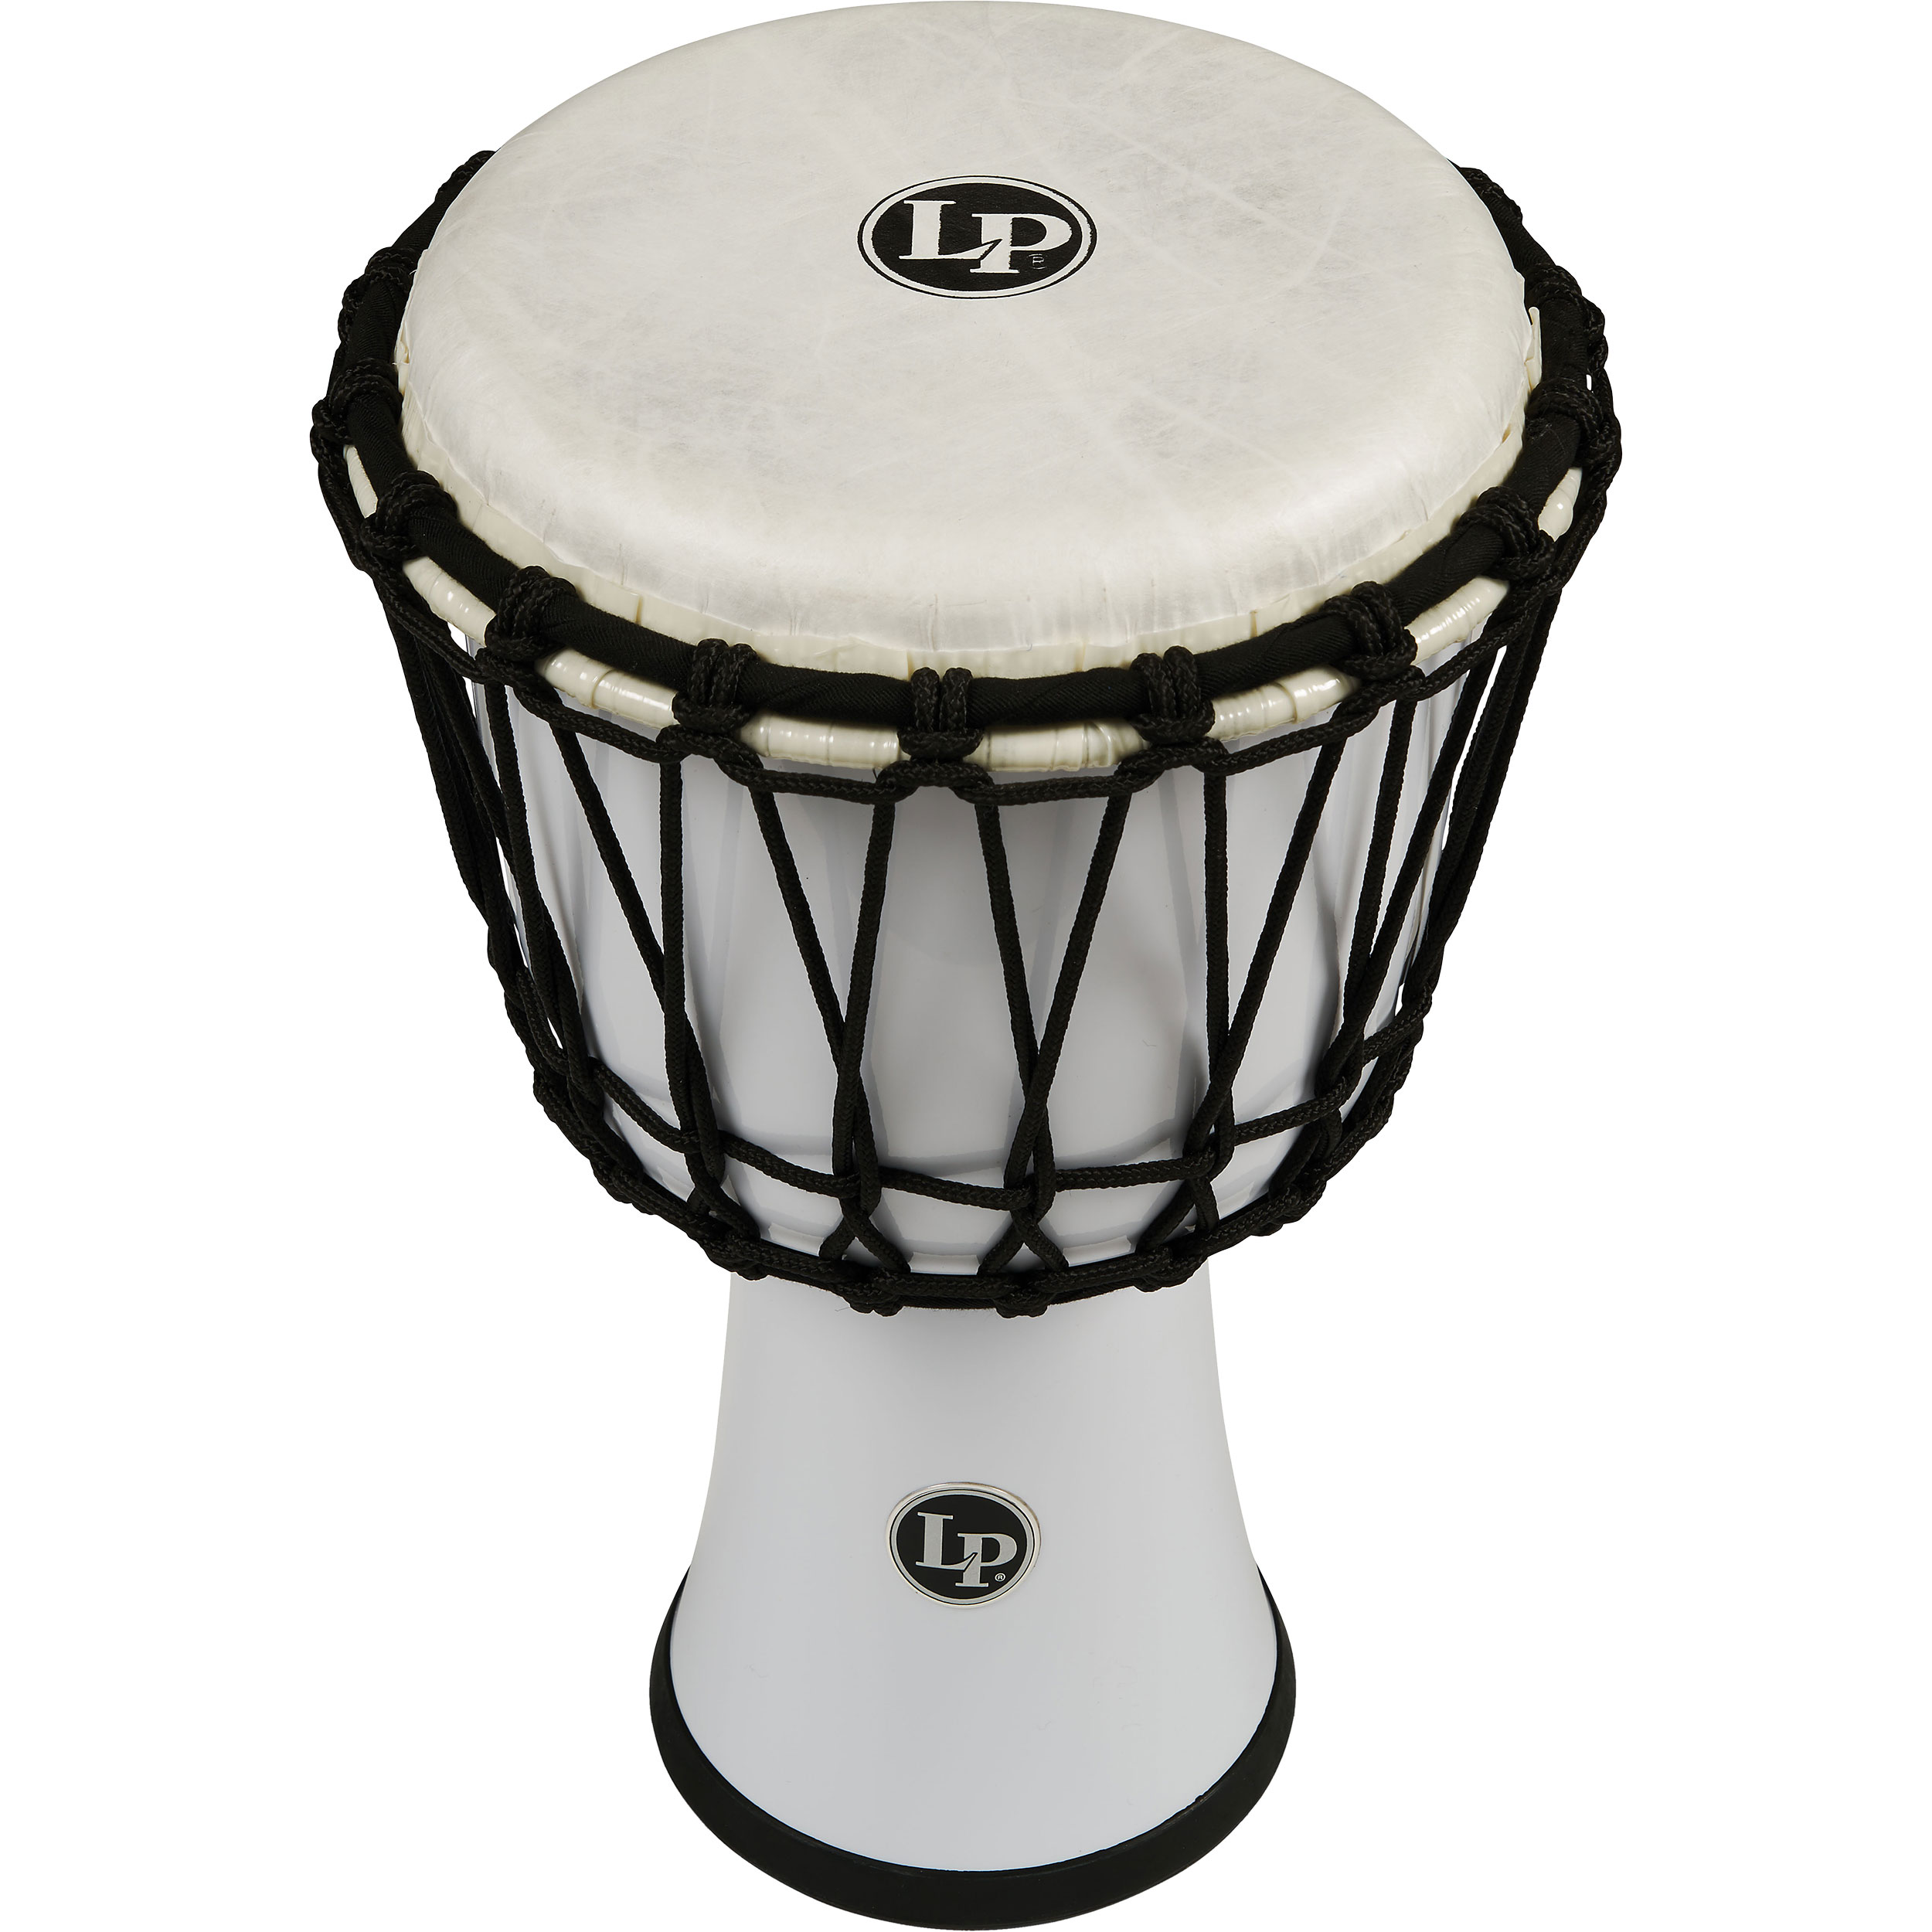 "LP 7"" Rope Tuned Circle Djembe in White"